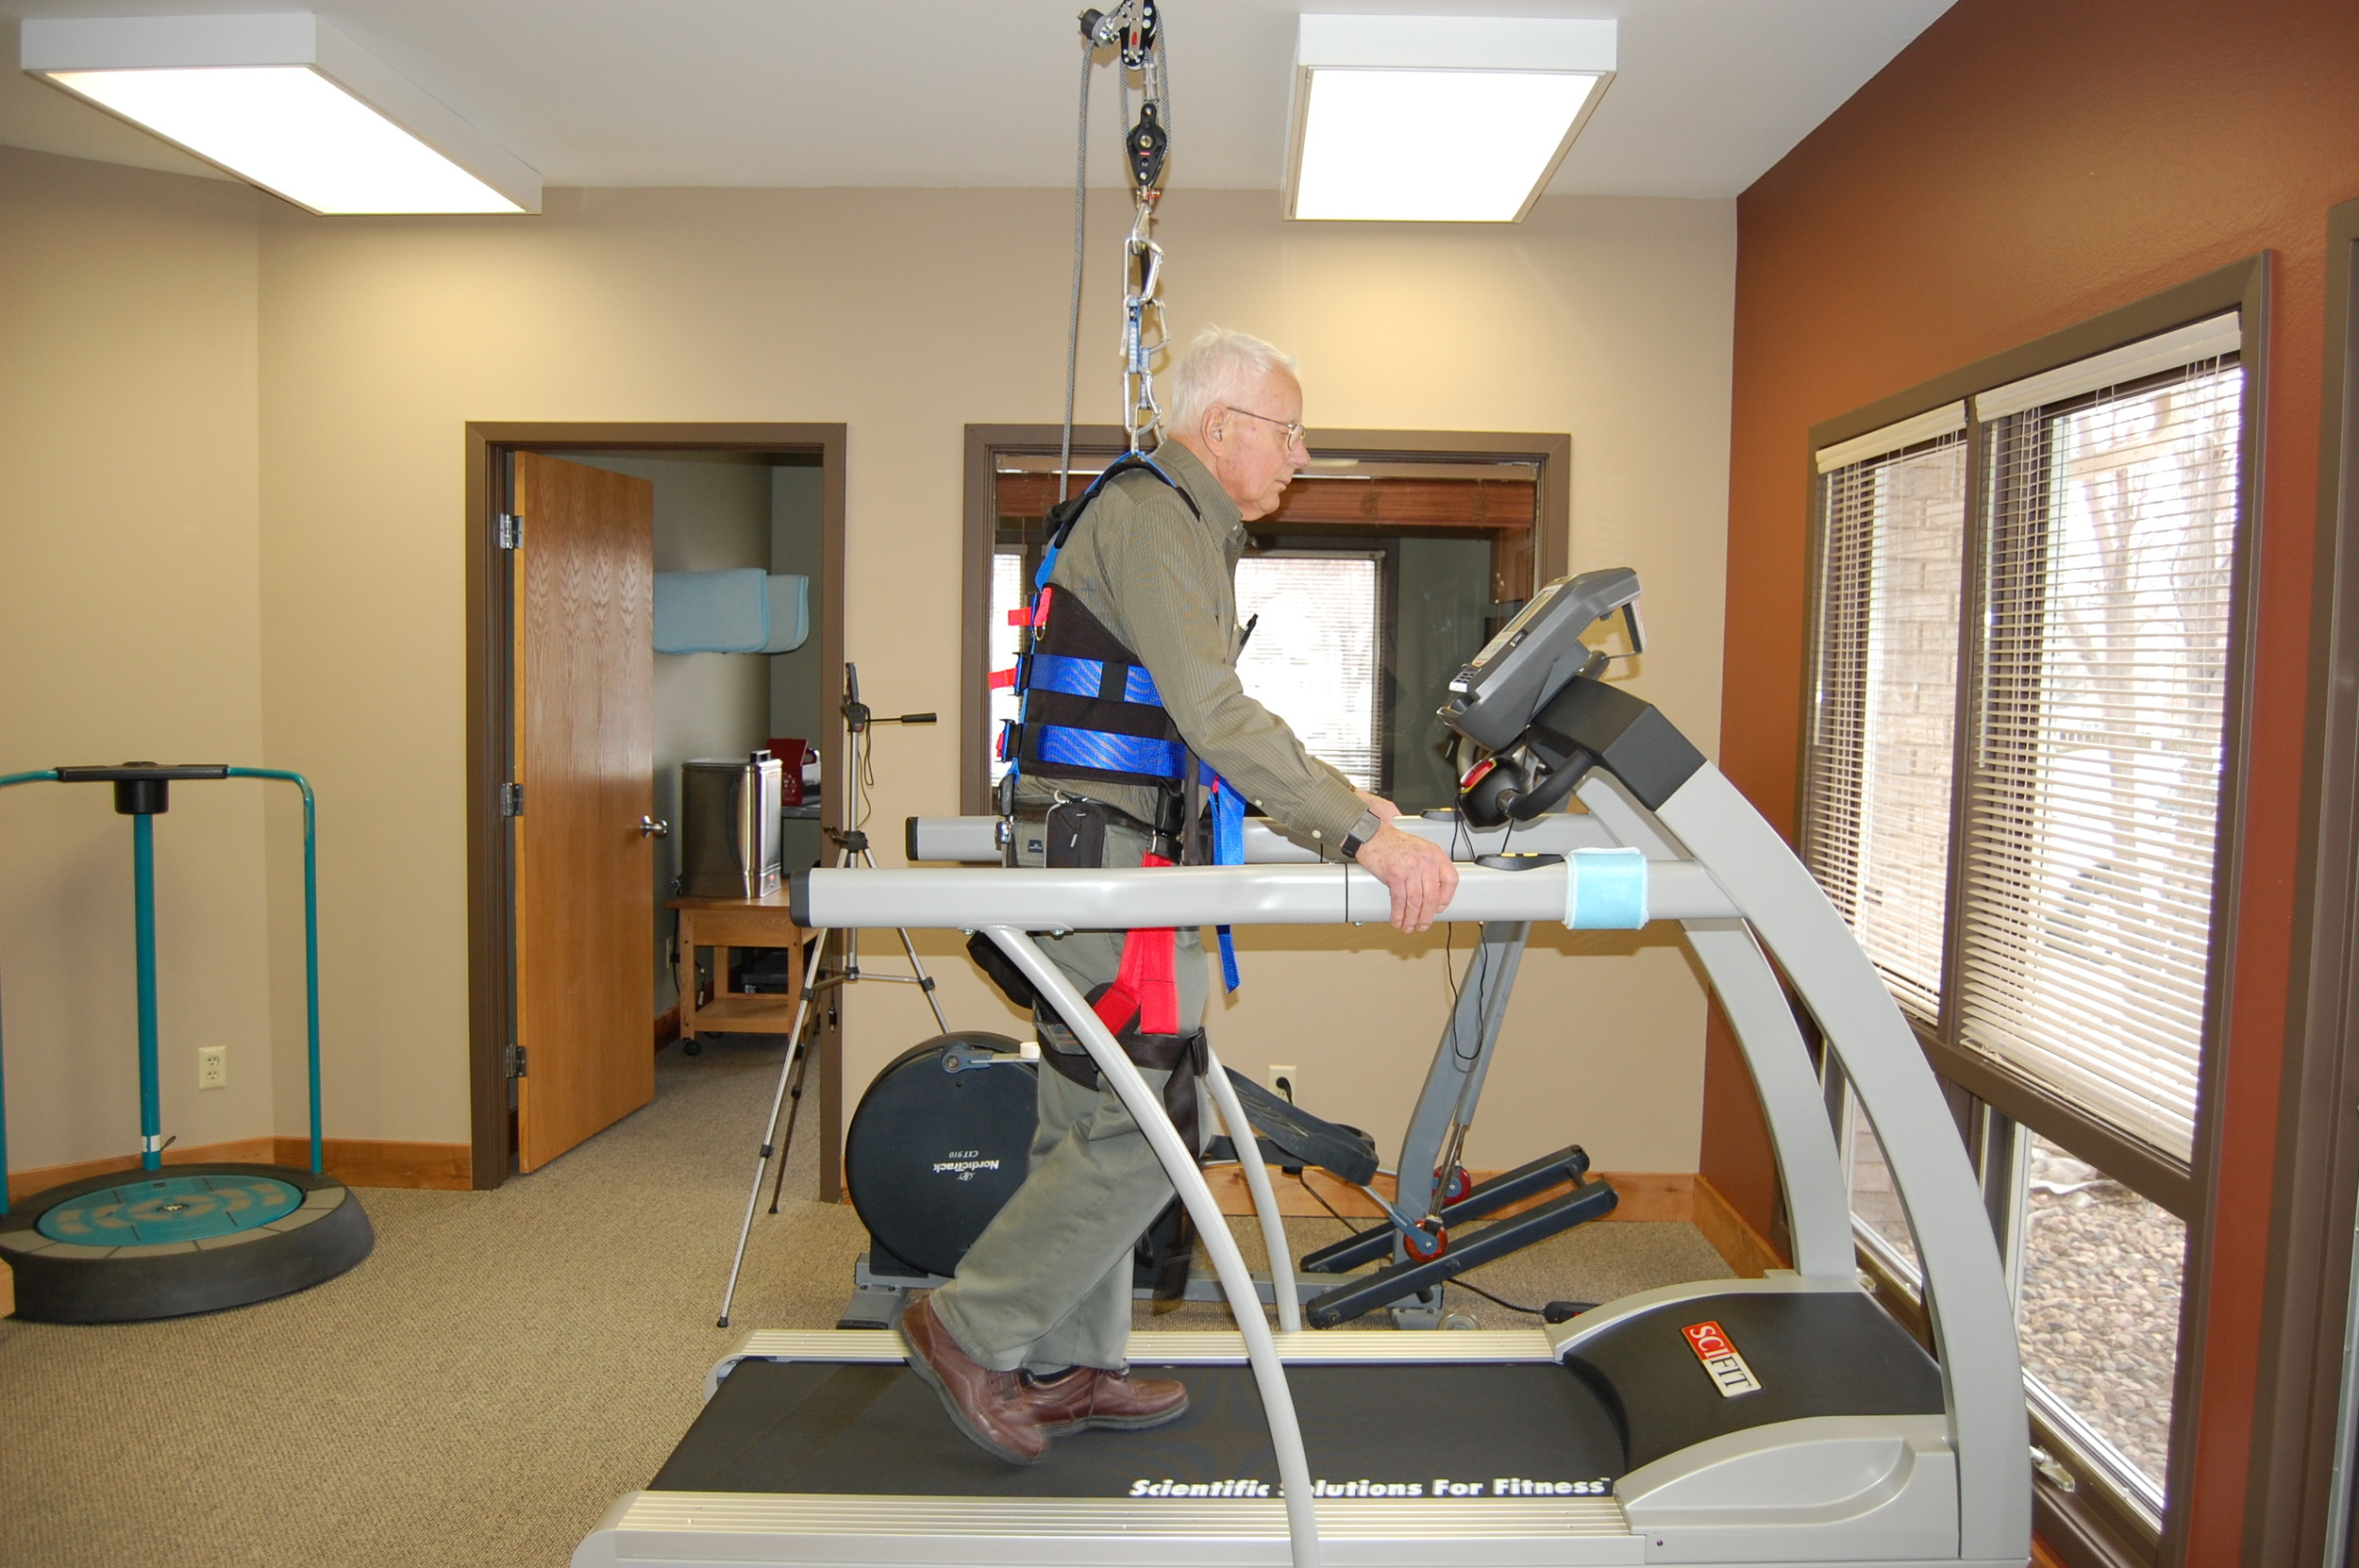 Individual using the body weight support harness on the treadmill to enhance his ability to walk.